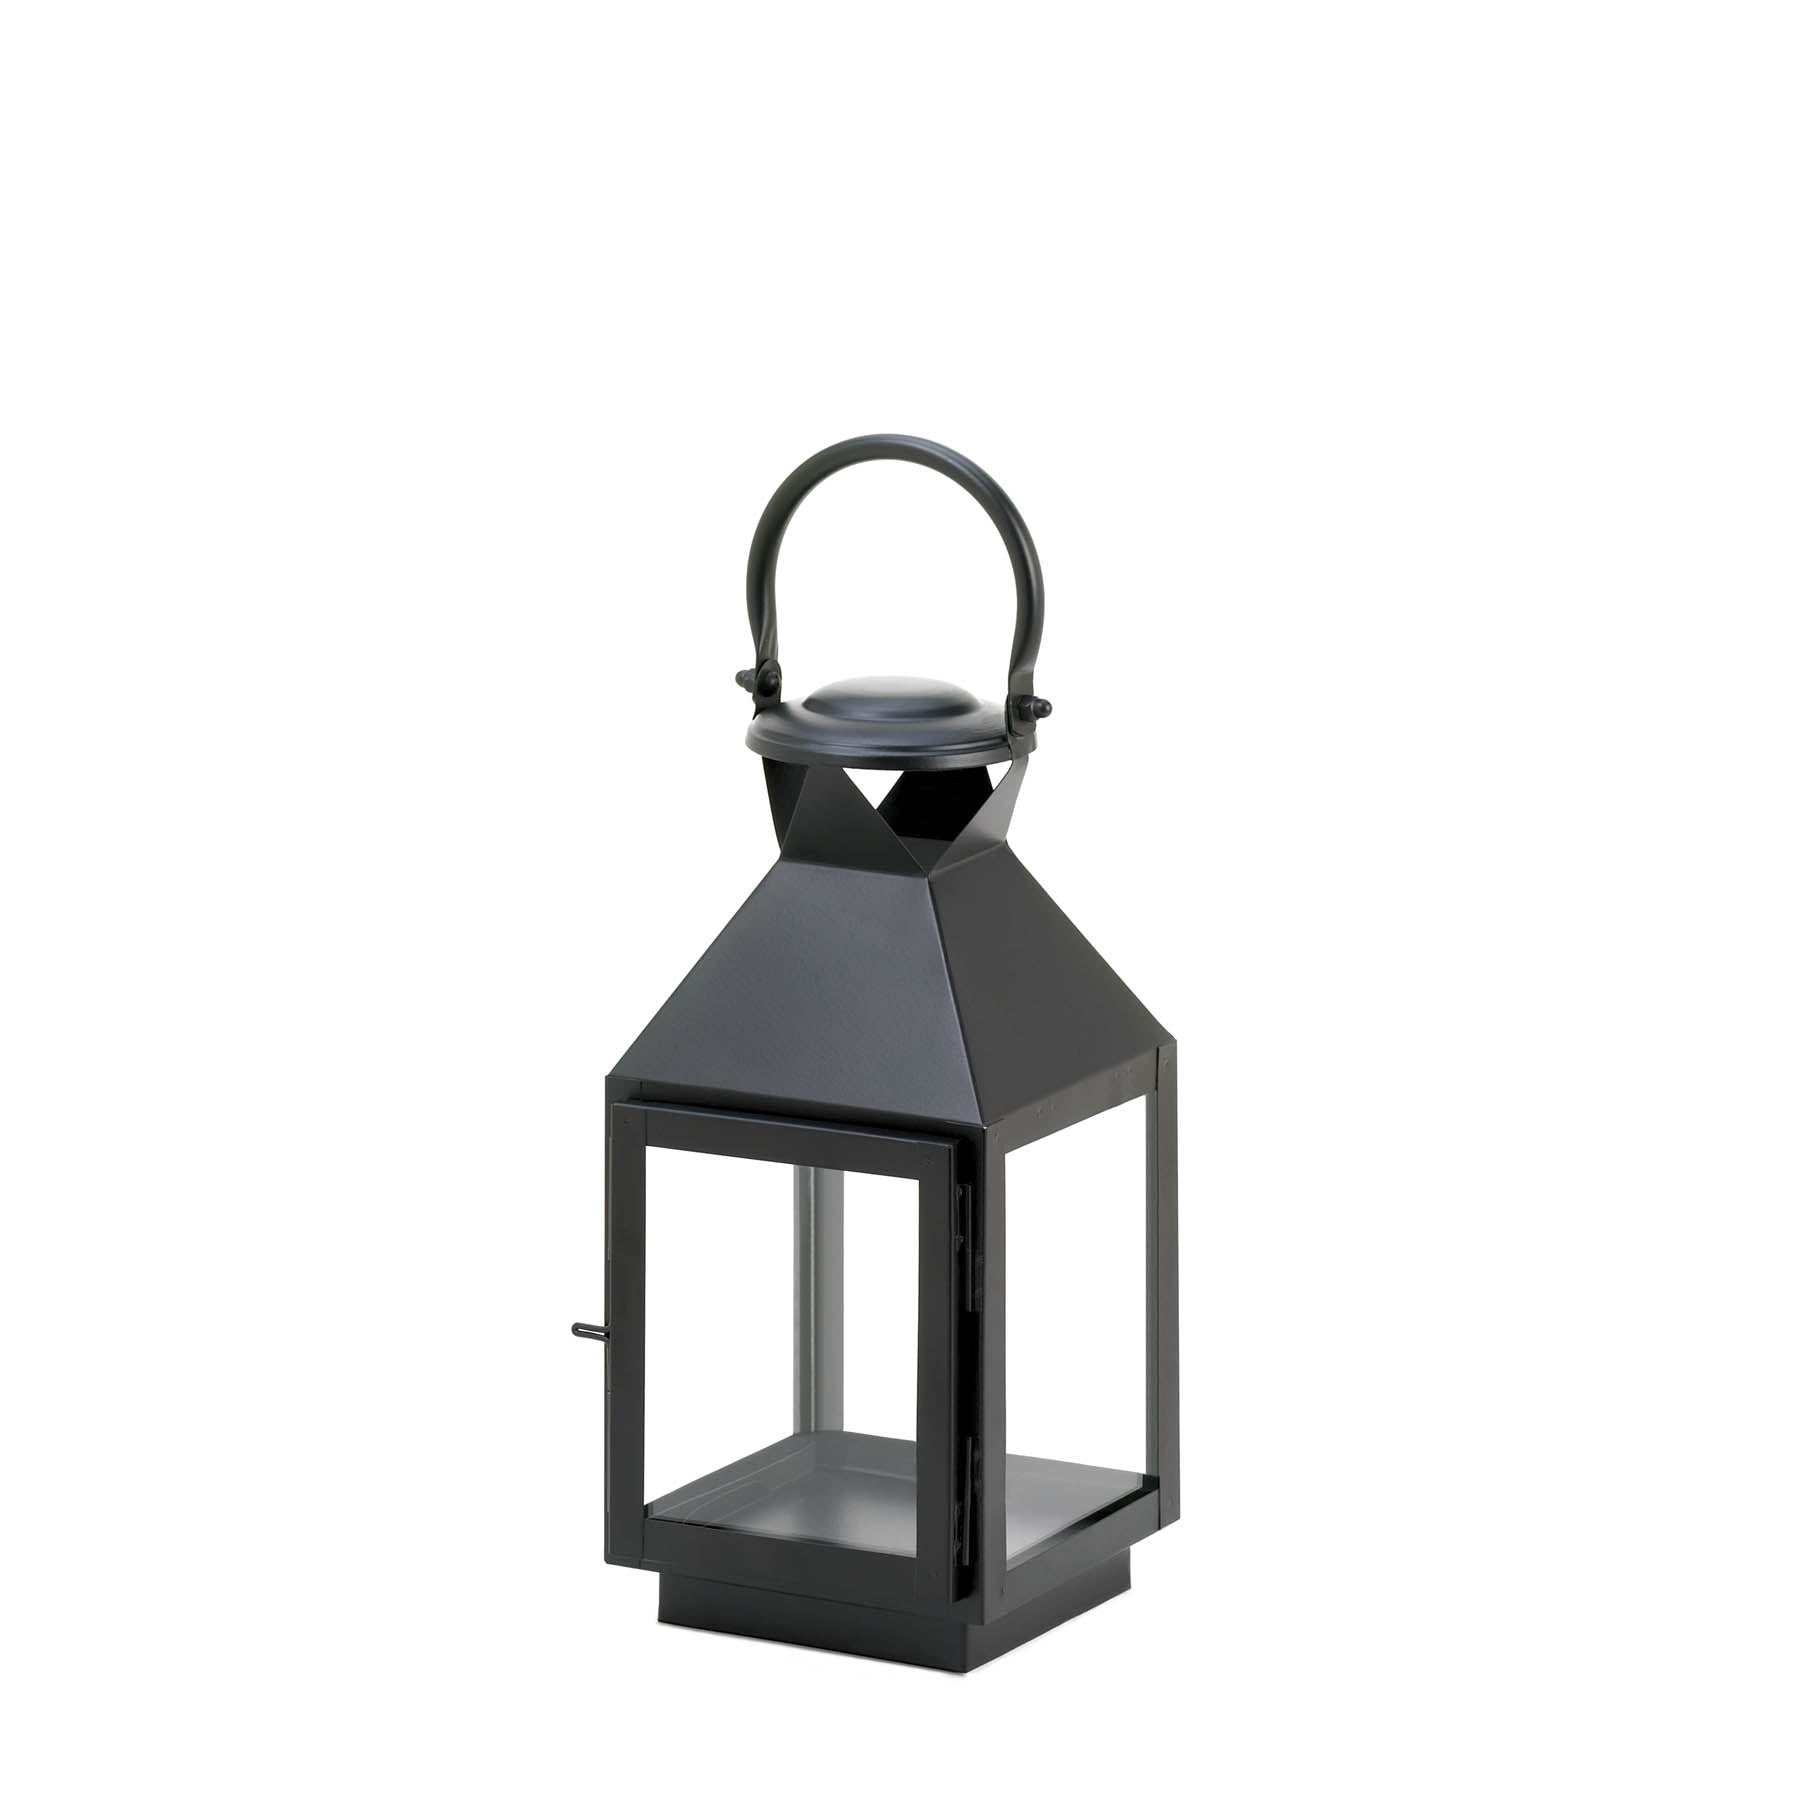 Gallery of Light Revere Medium Candle Lantern - 15219